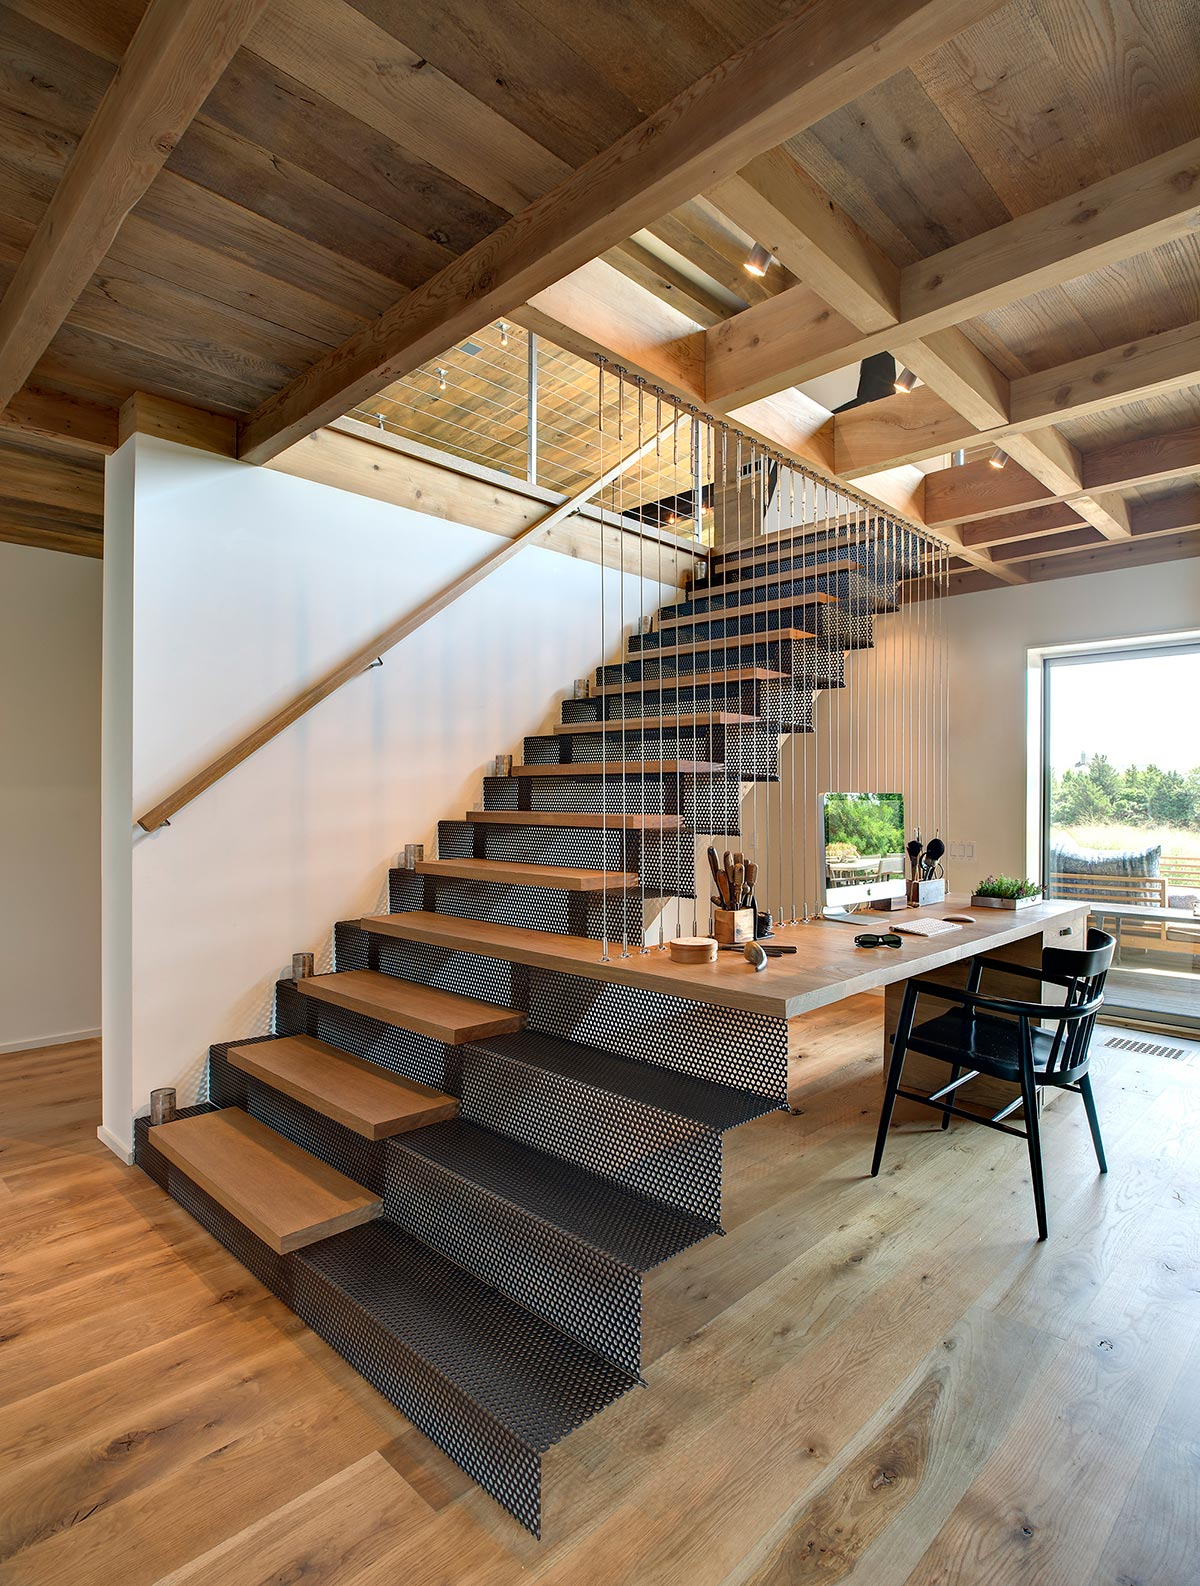 Best Staircase Designs For The Modern Home  Adorable Home - Home staircase designs